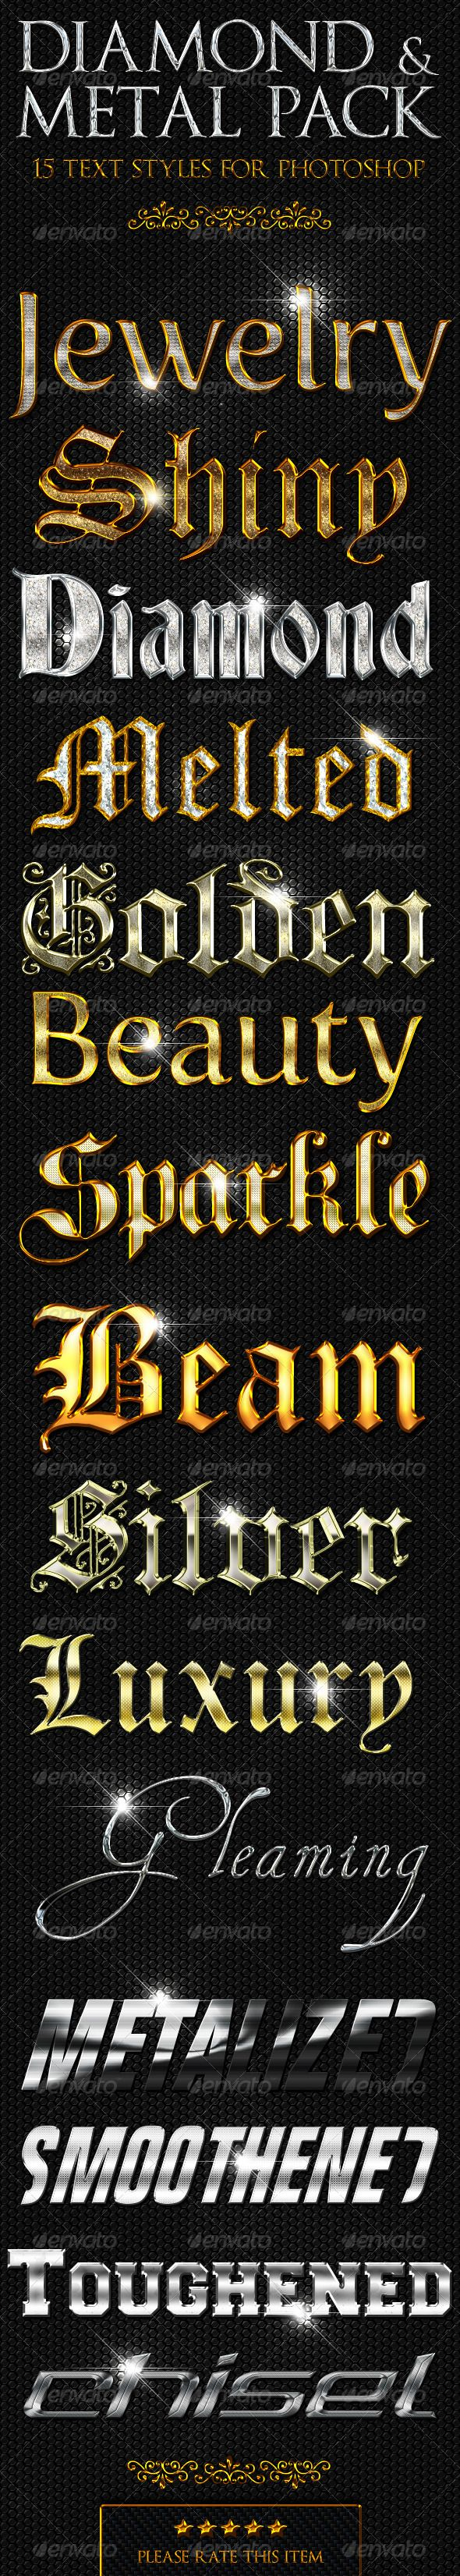 """15 Diamond & Metal Text Styles for Photoshop,"" by ""valecf1"" sold exclusively at Envato."